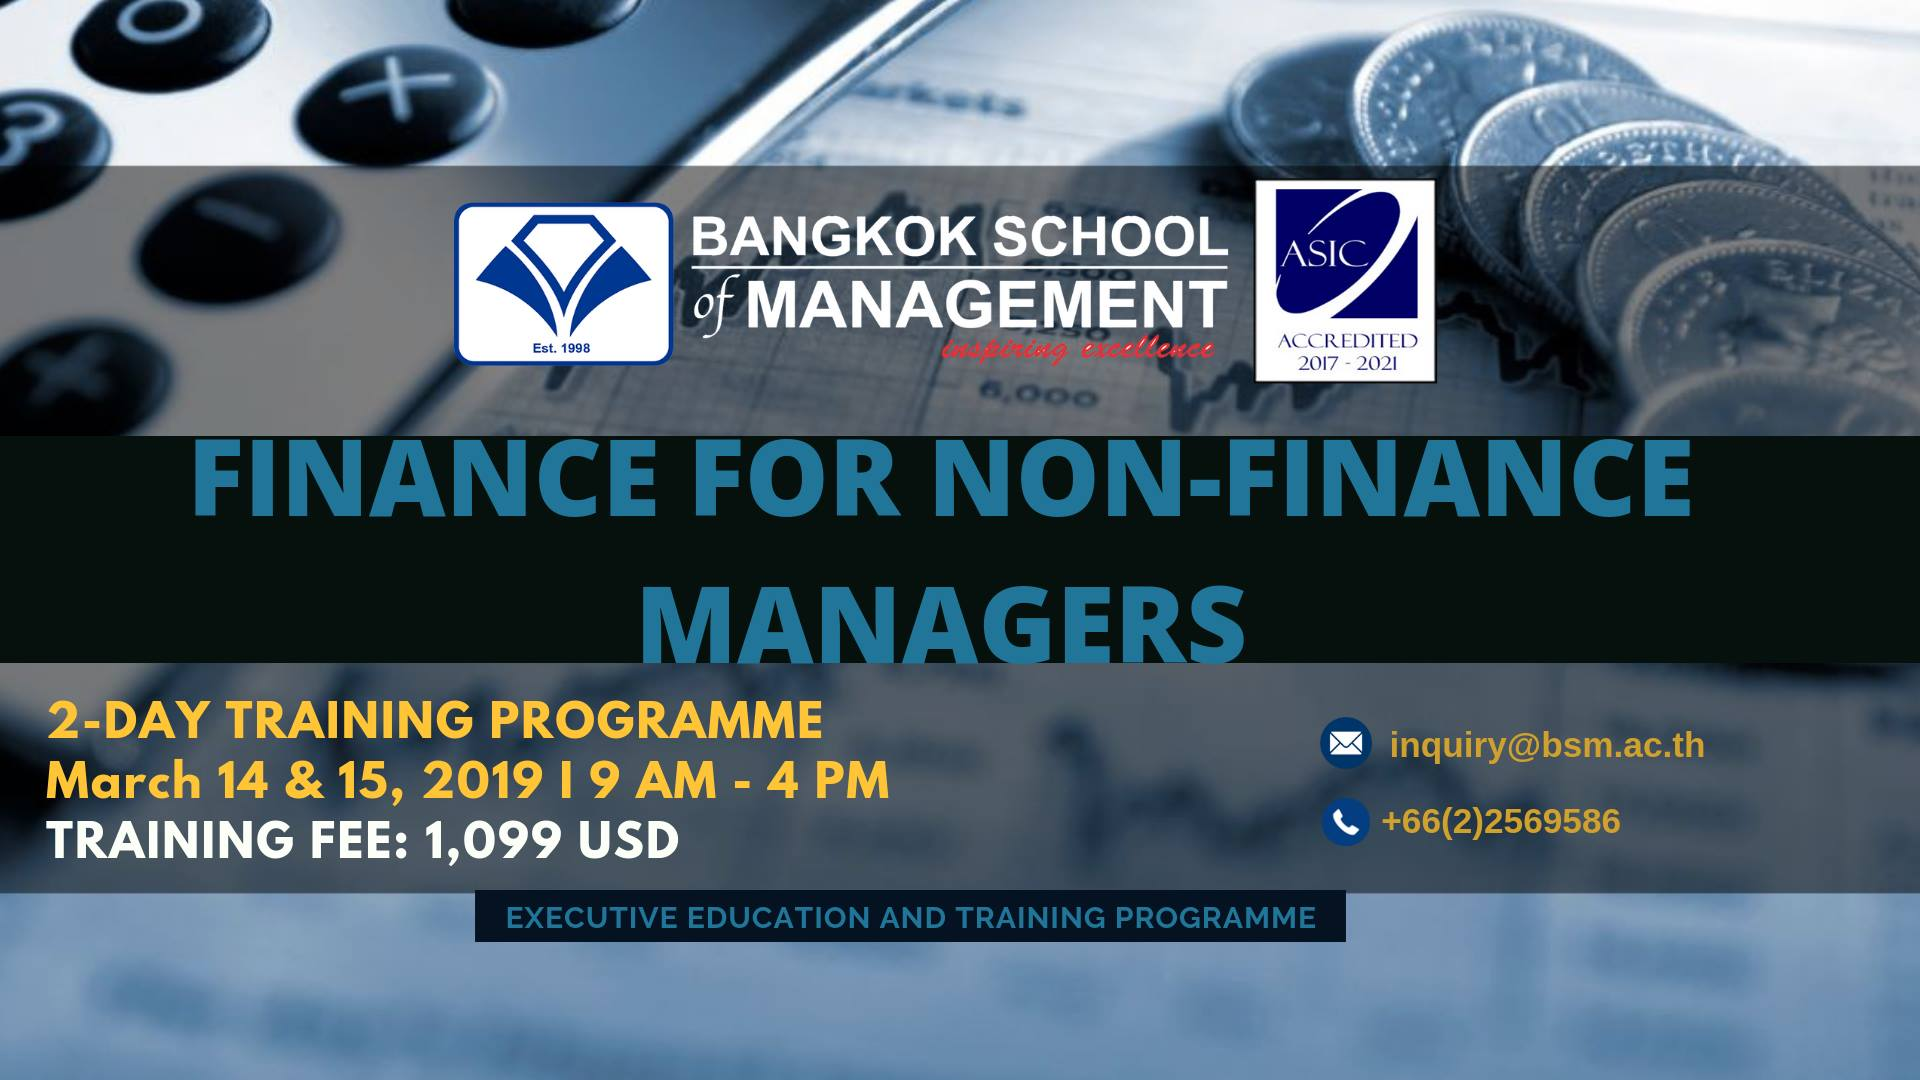 Date: March 14 & 15, 2019 Finance for Non-Finance Managers